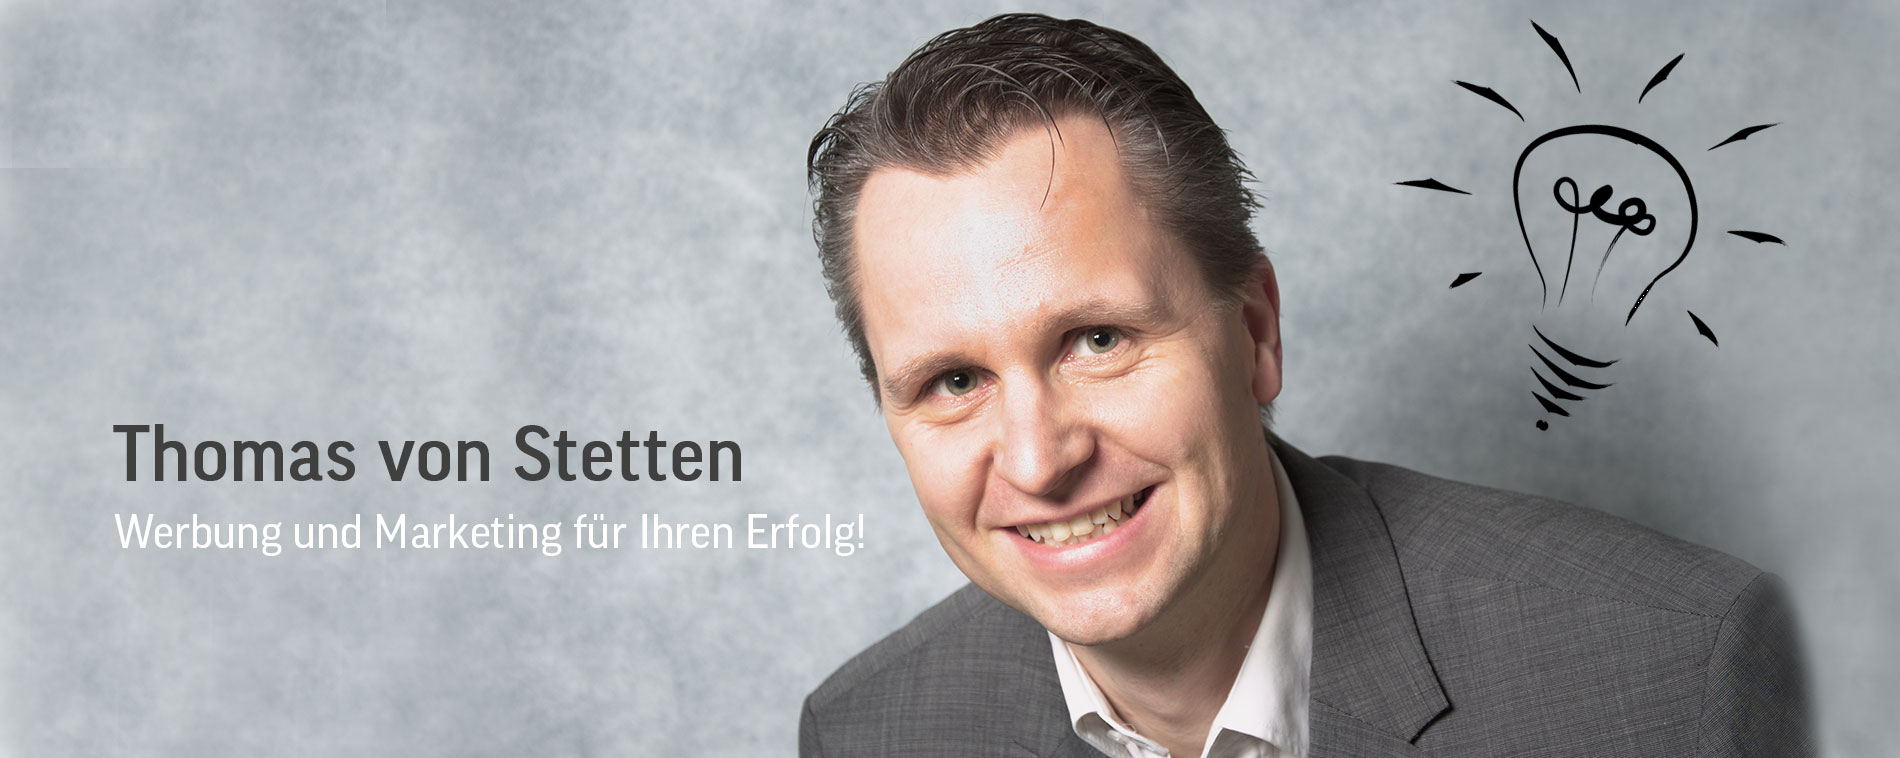 Werbung und Marketing - Thomas von stetten Berater